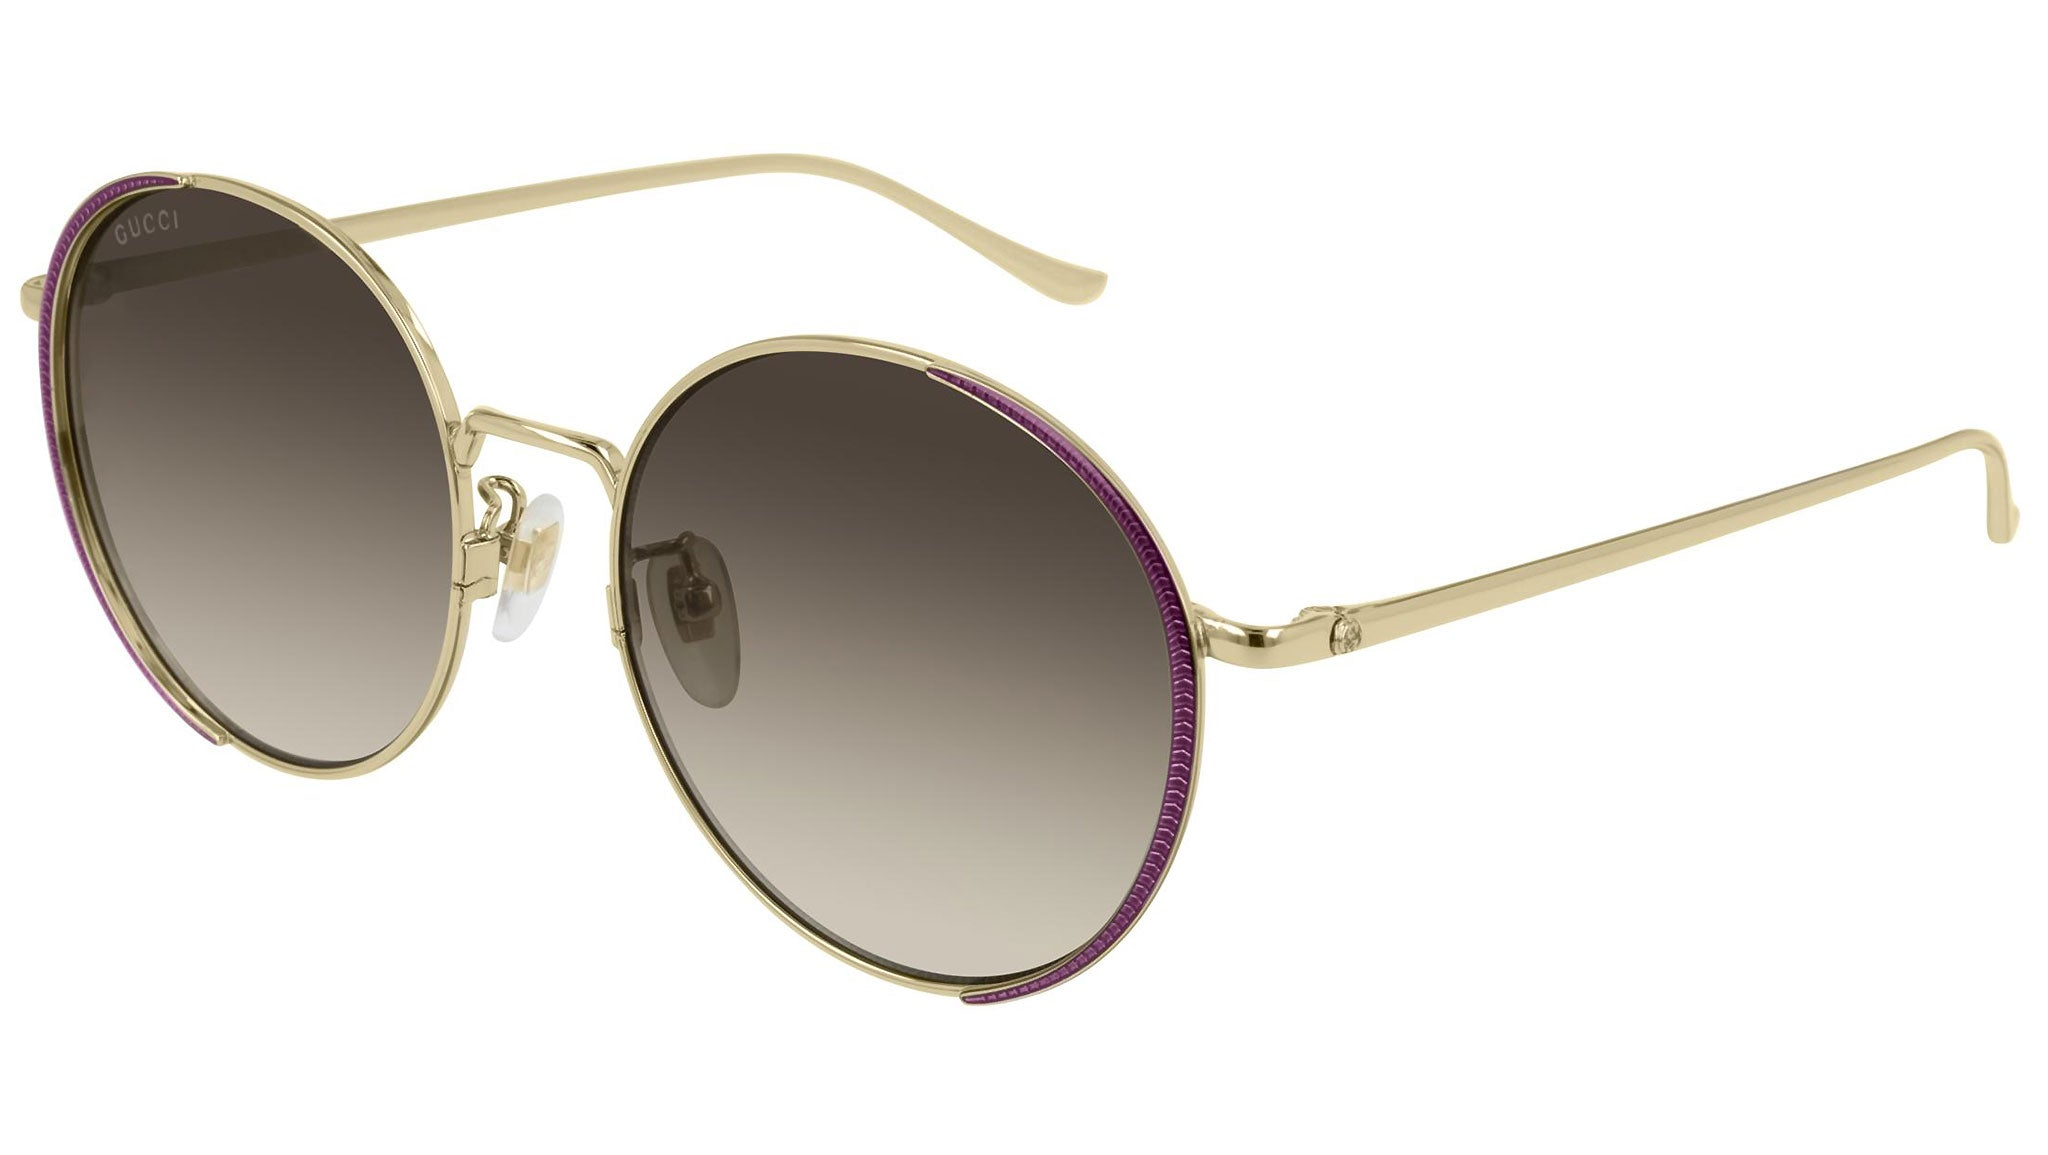 GG0401SK violet gold and brown